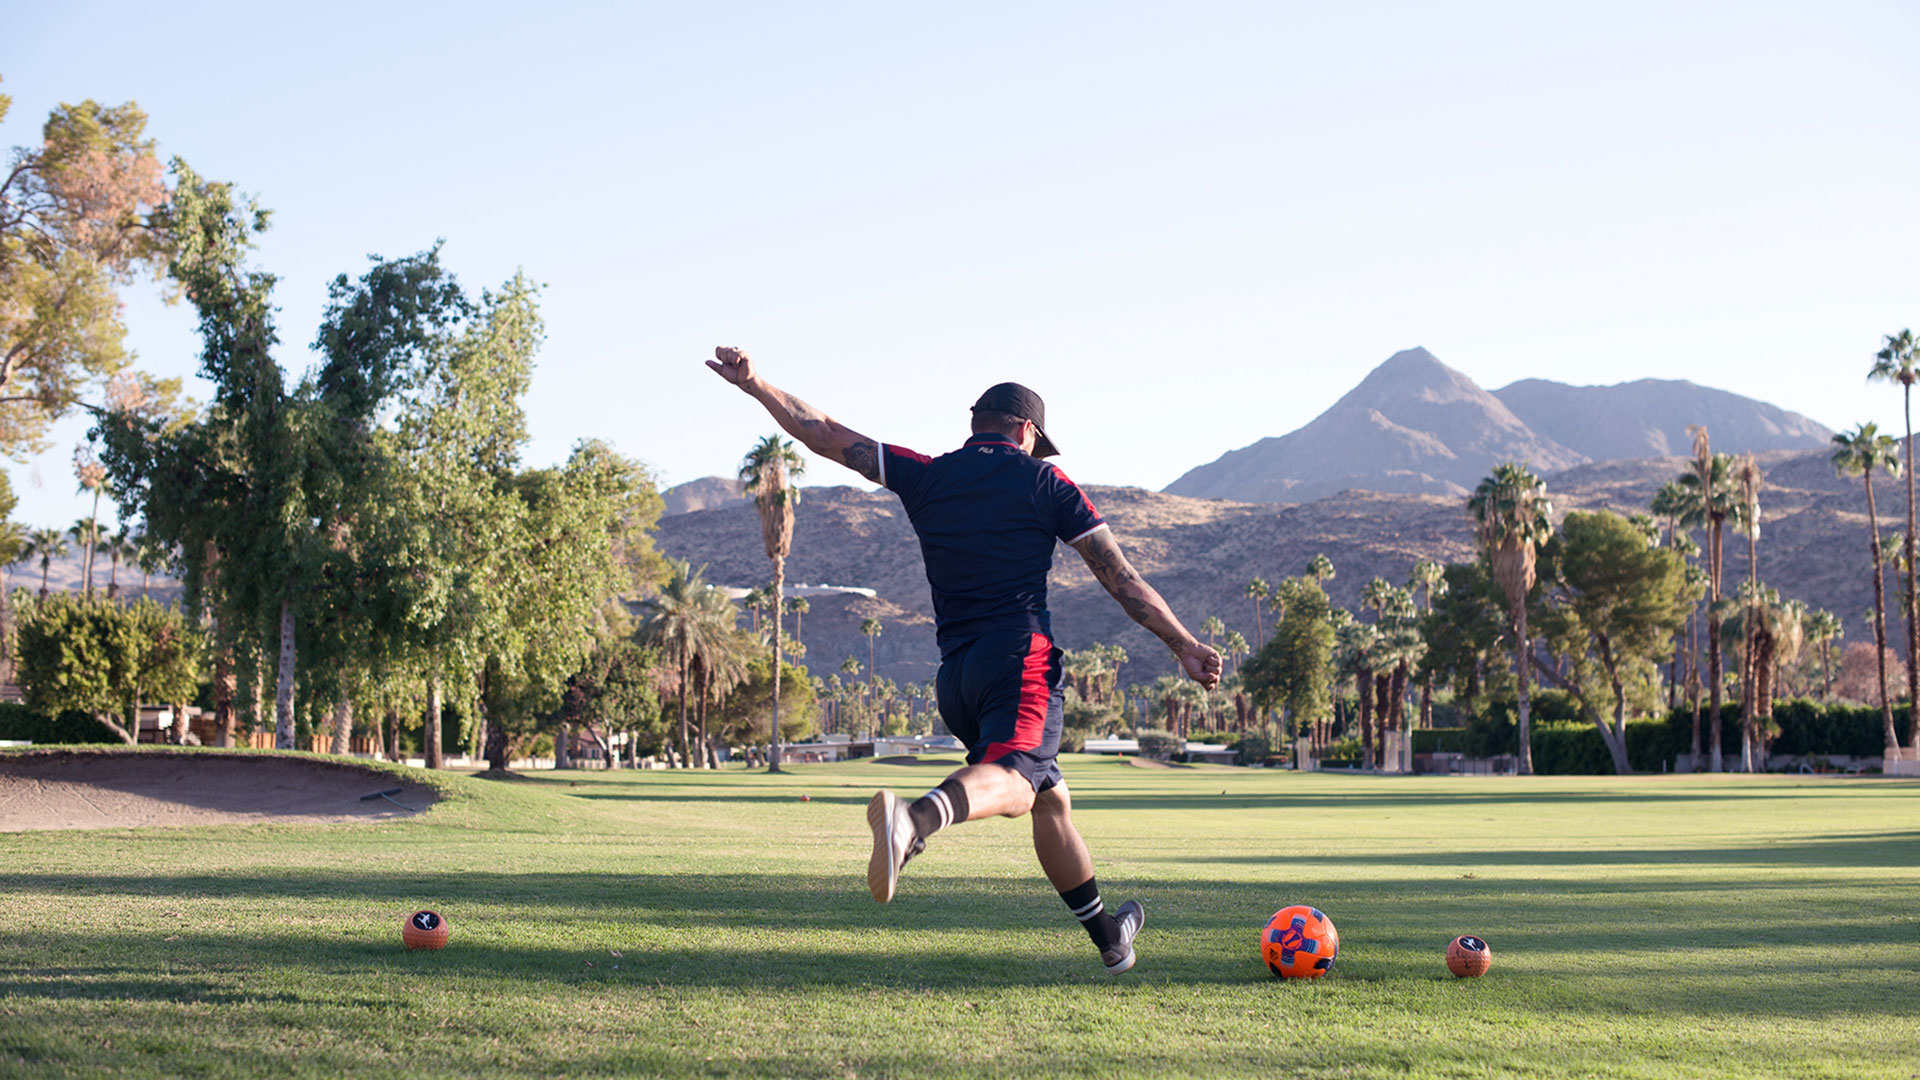 footgolf in greater palm springs